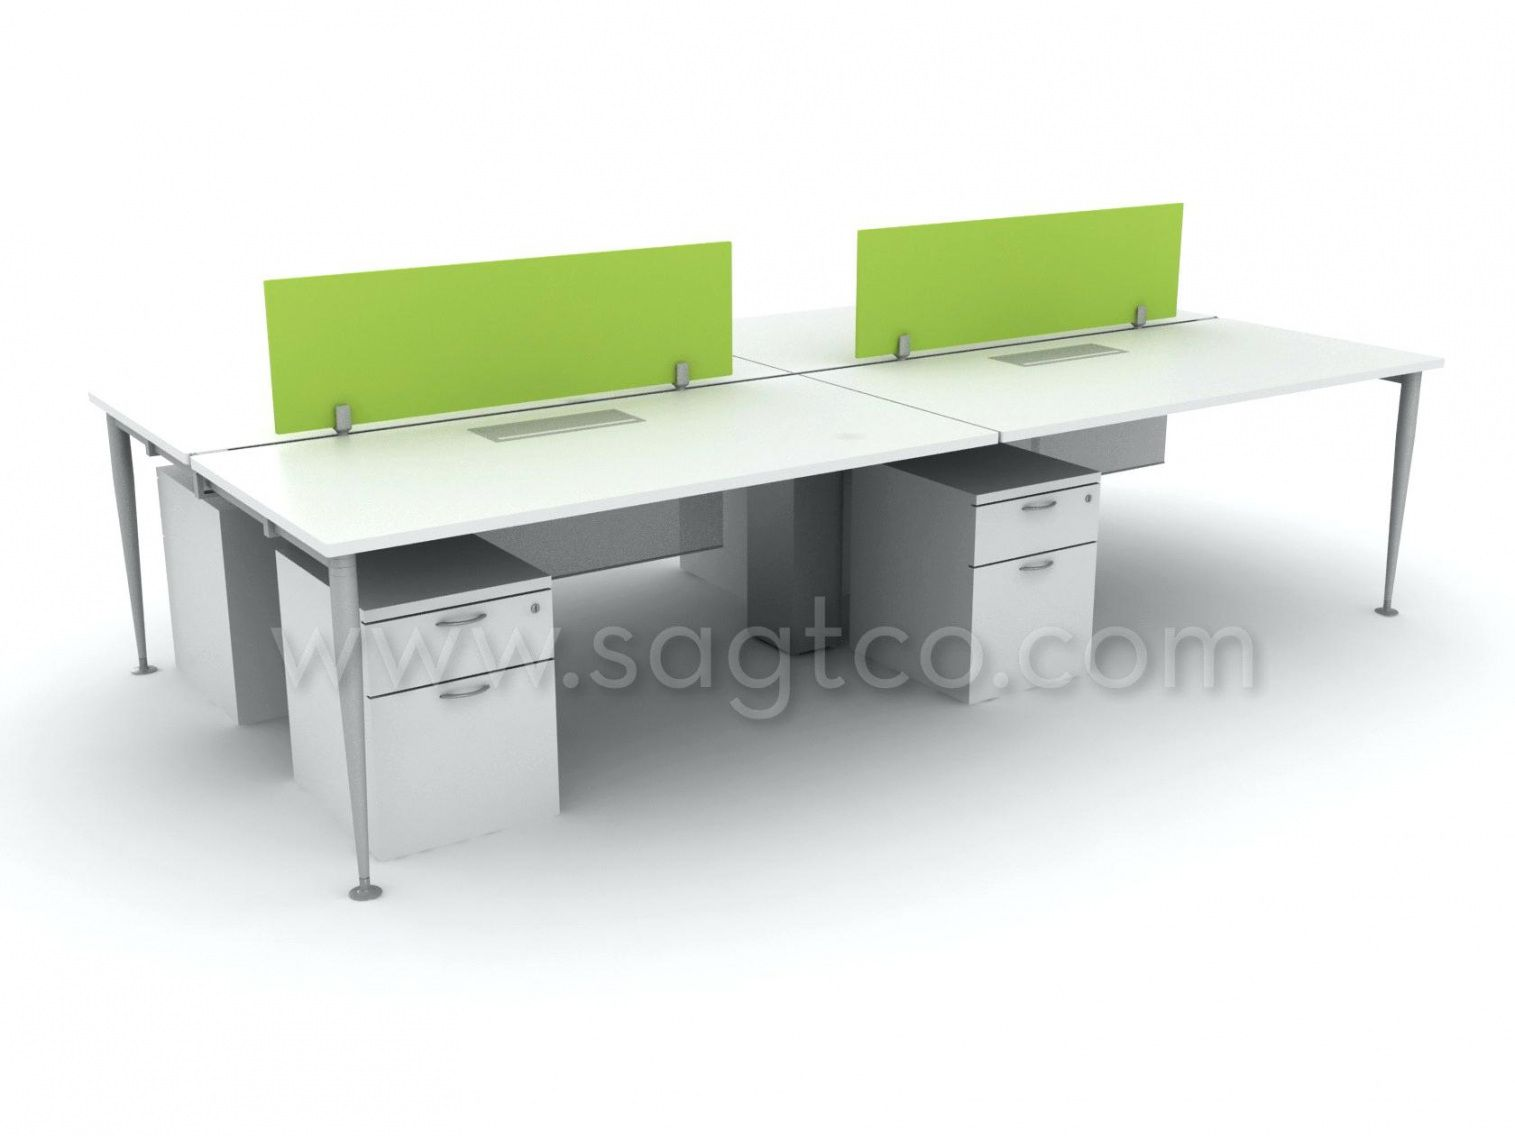 Office Desk Partition   Home Office Furniture Images Check More At  Http://www